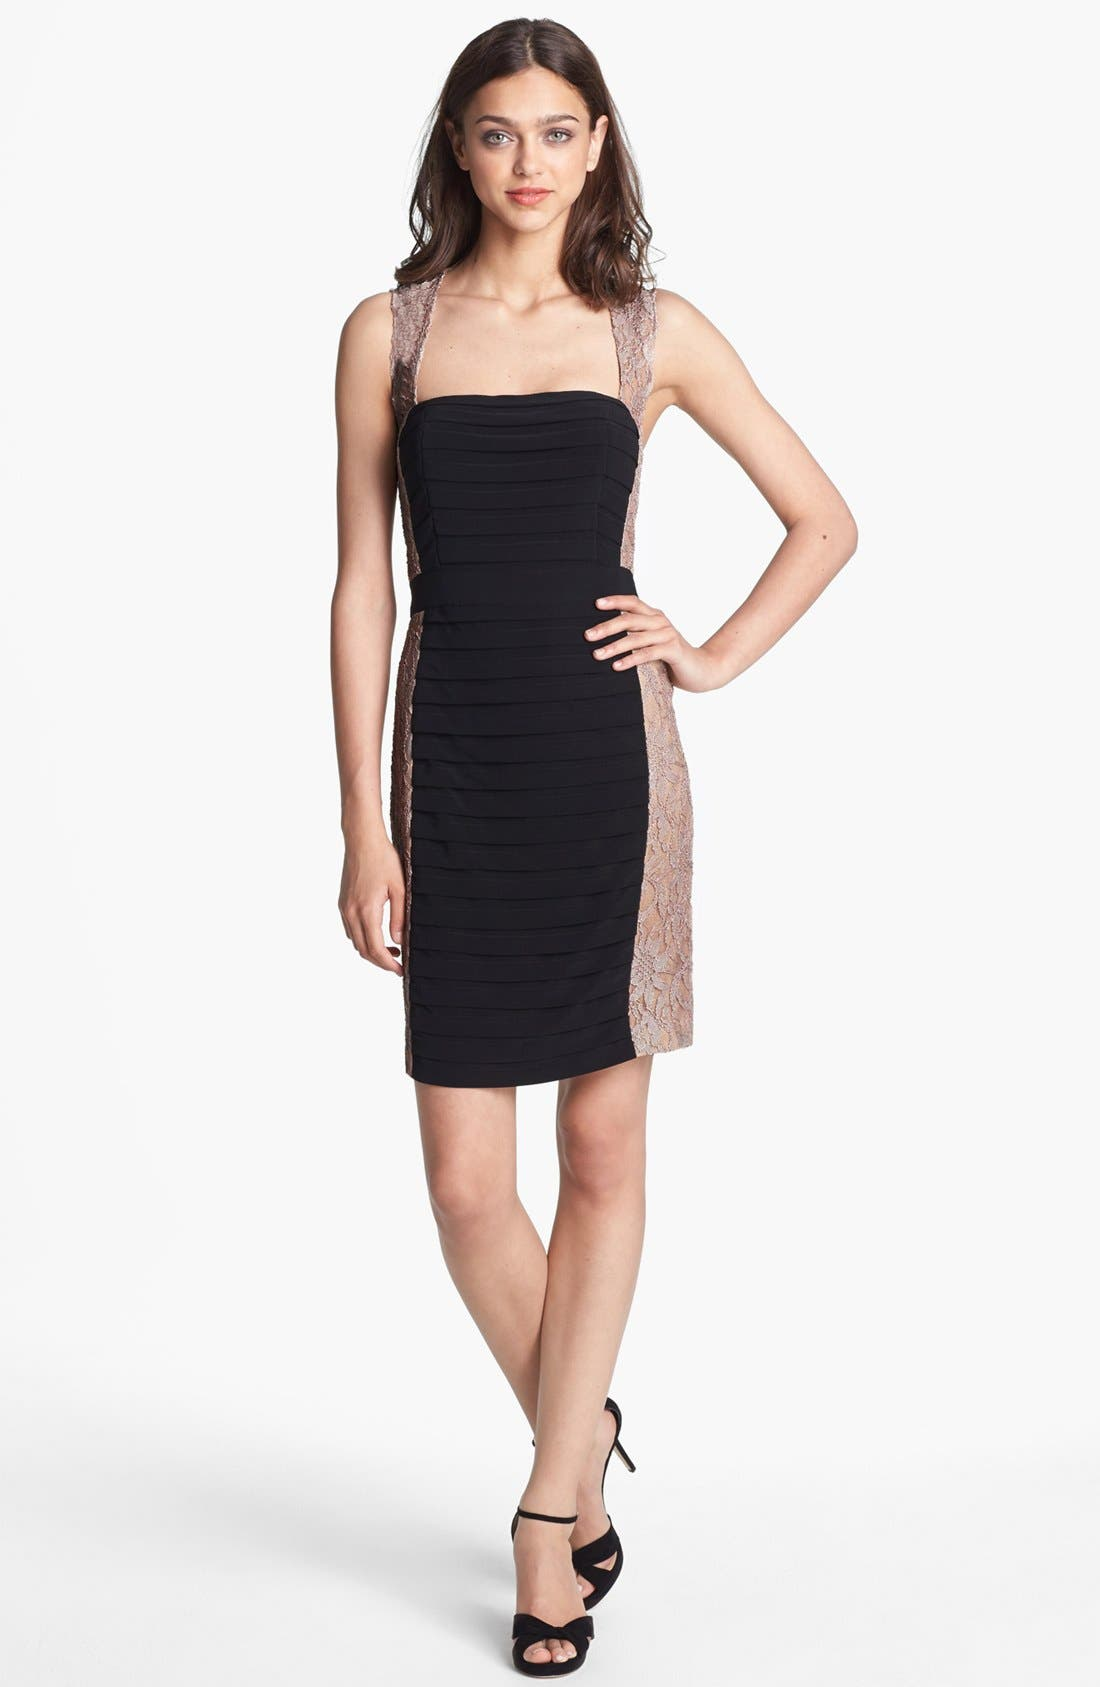 Alternate Image 1 Selected - Hailey by Adrianna Papell Lace & Shutter Pleat Sheath Dress (Online Only)